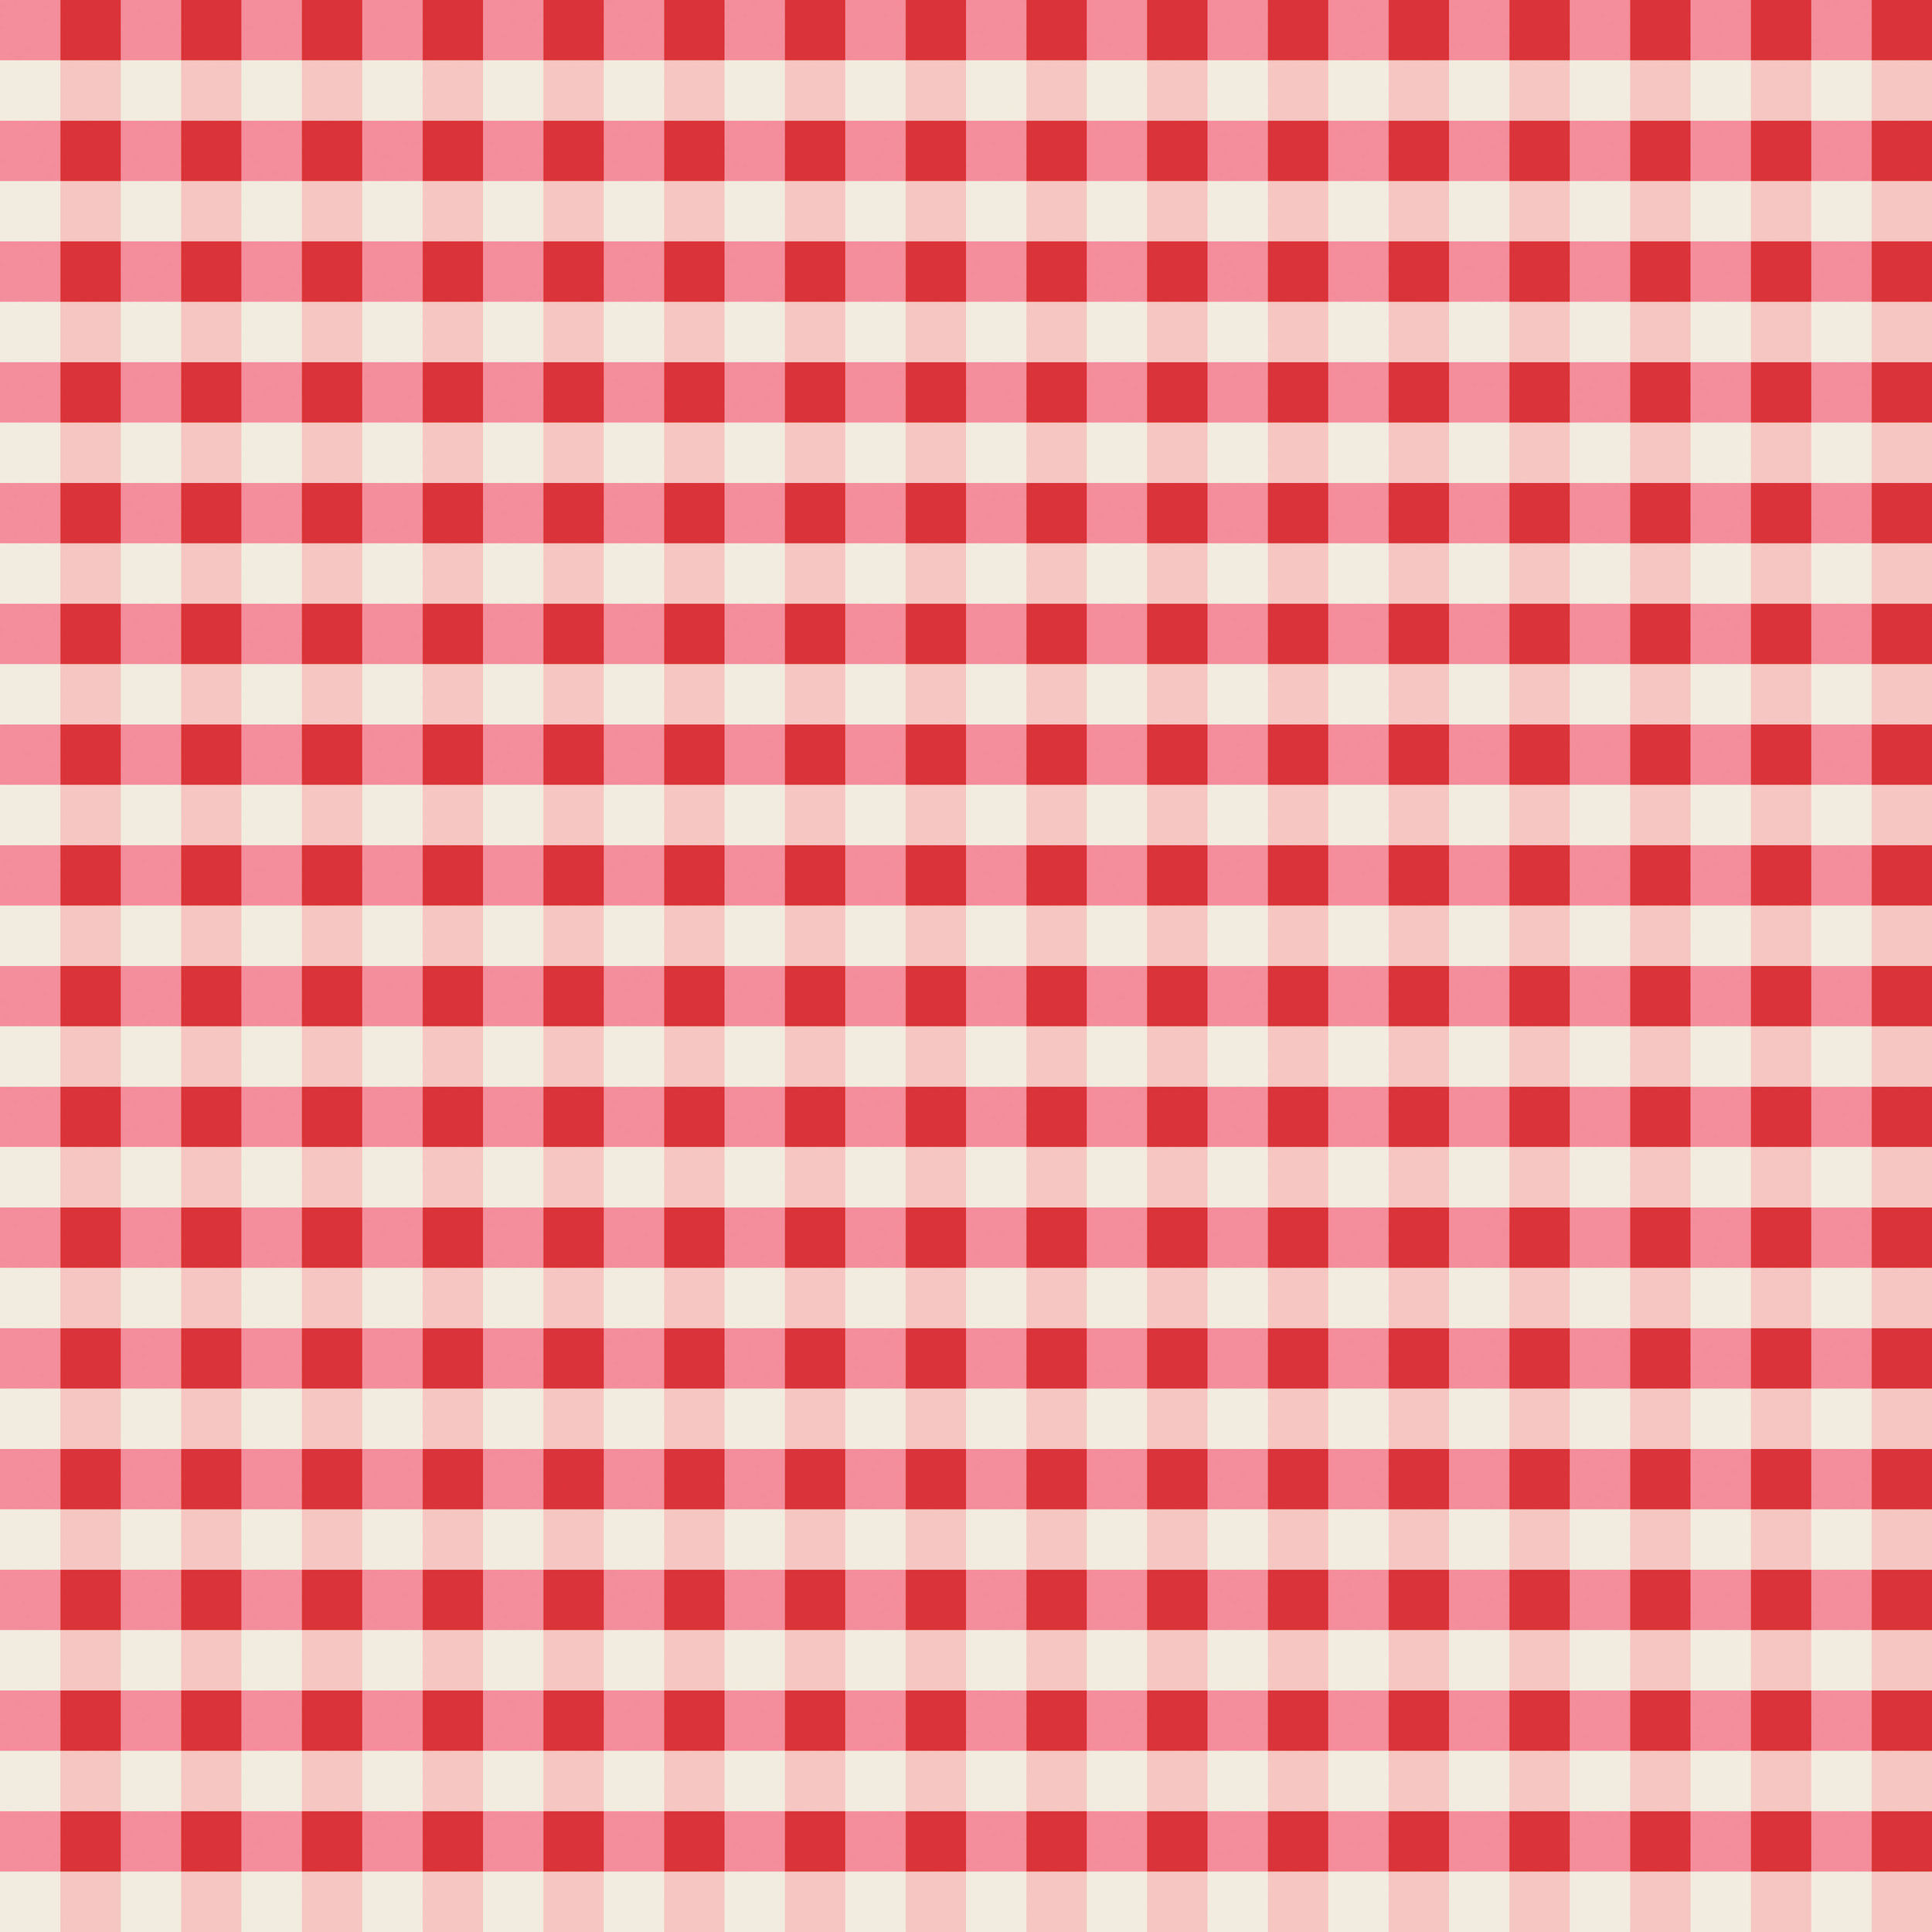 pink and red plaid 300-01.jpg